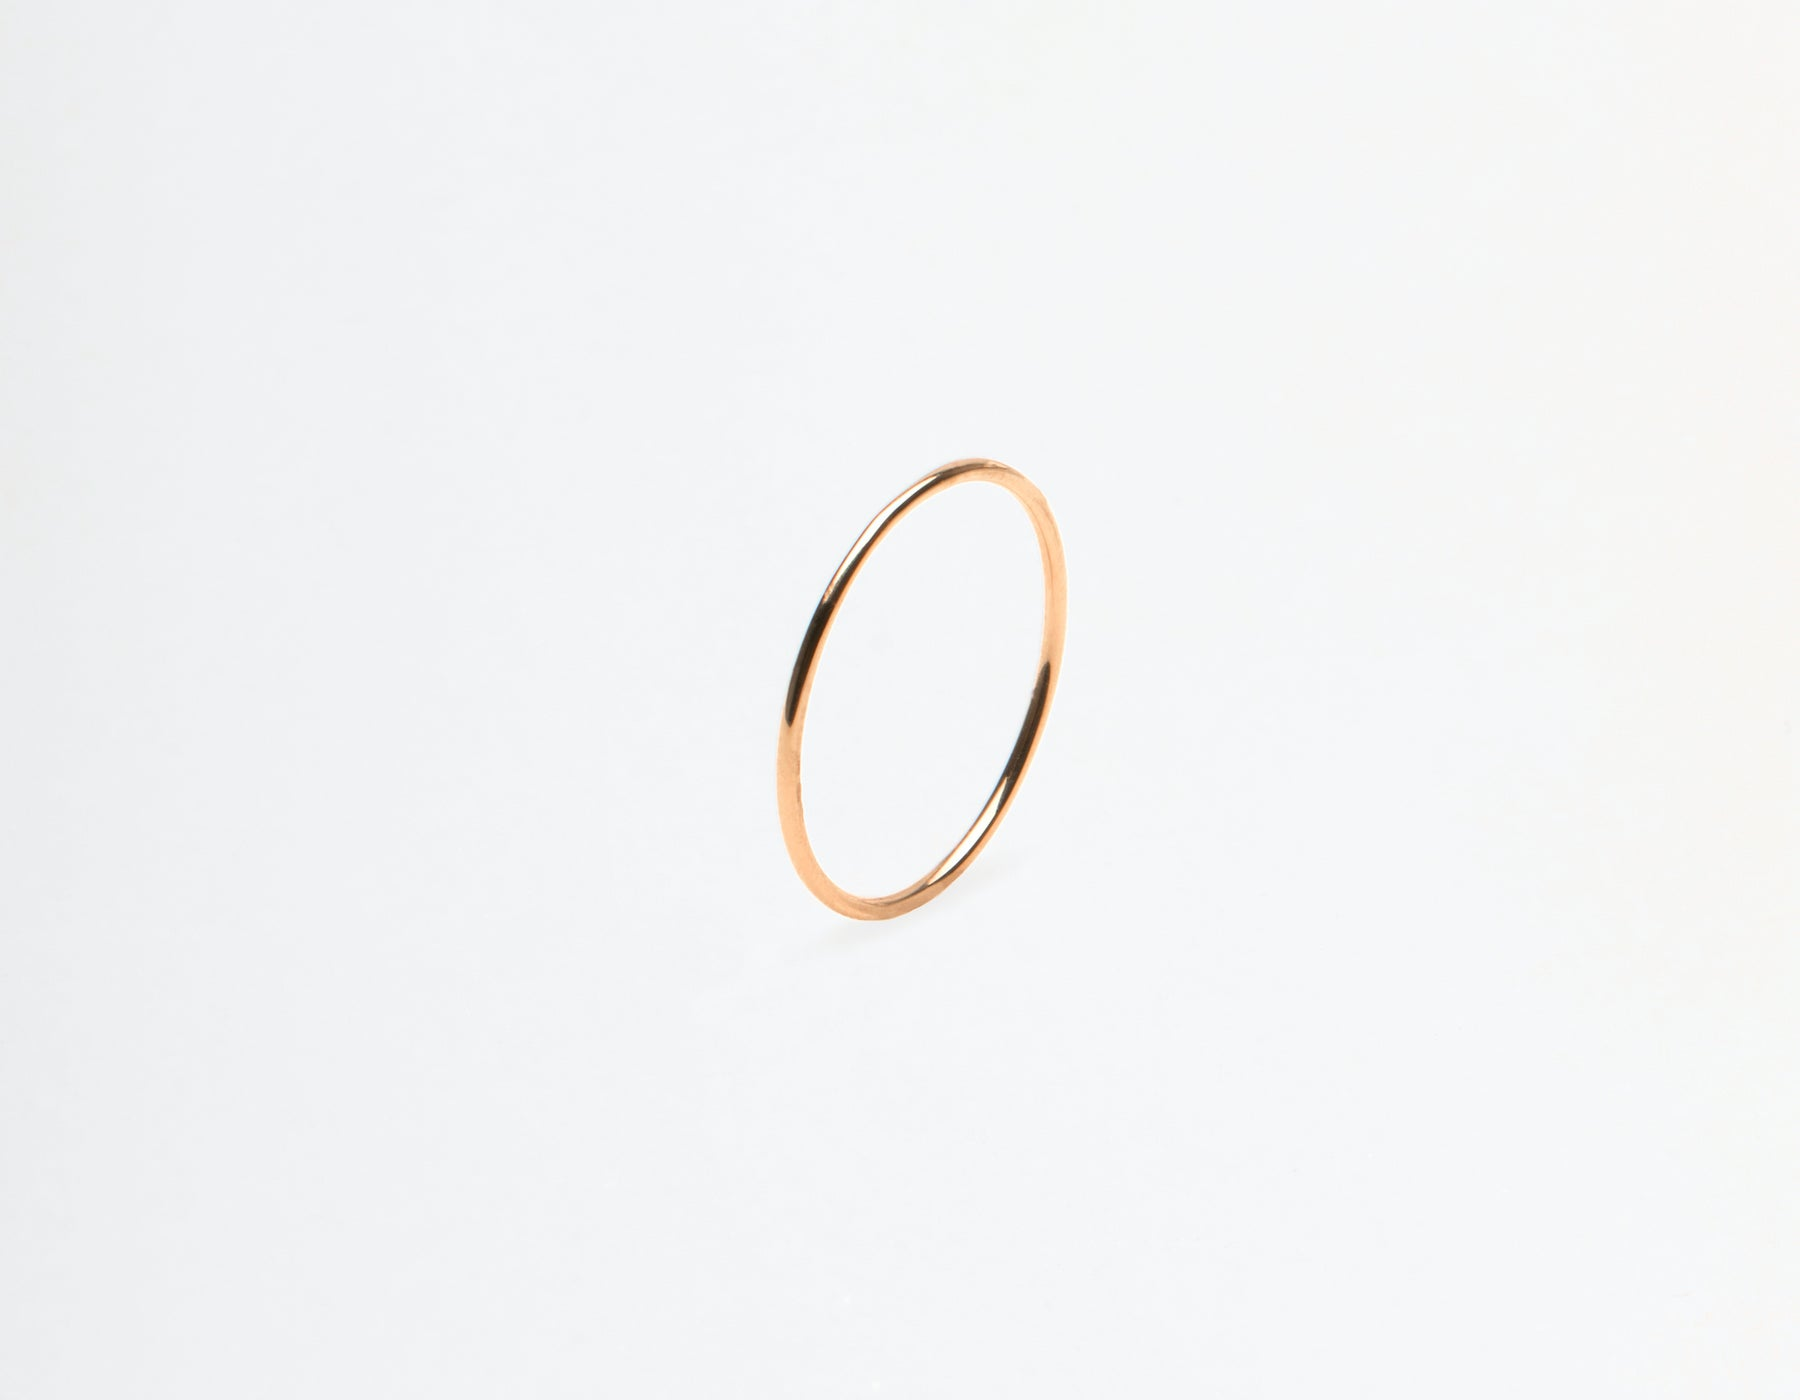 Vrai and Oro 14k solid gold Skinny Stacking Ring single minimalist band, 14K Rose Gold